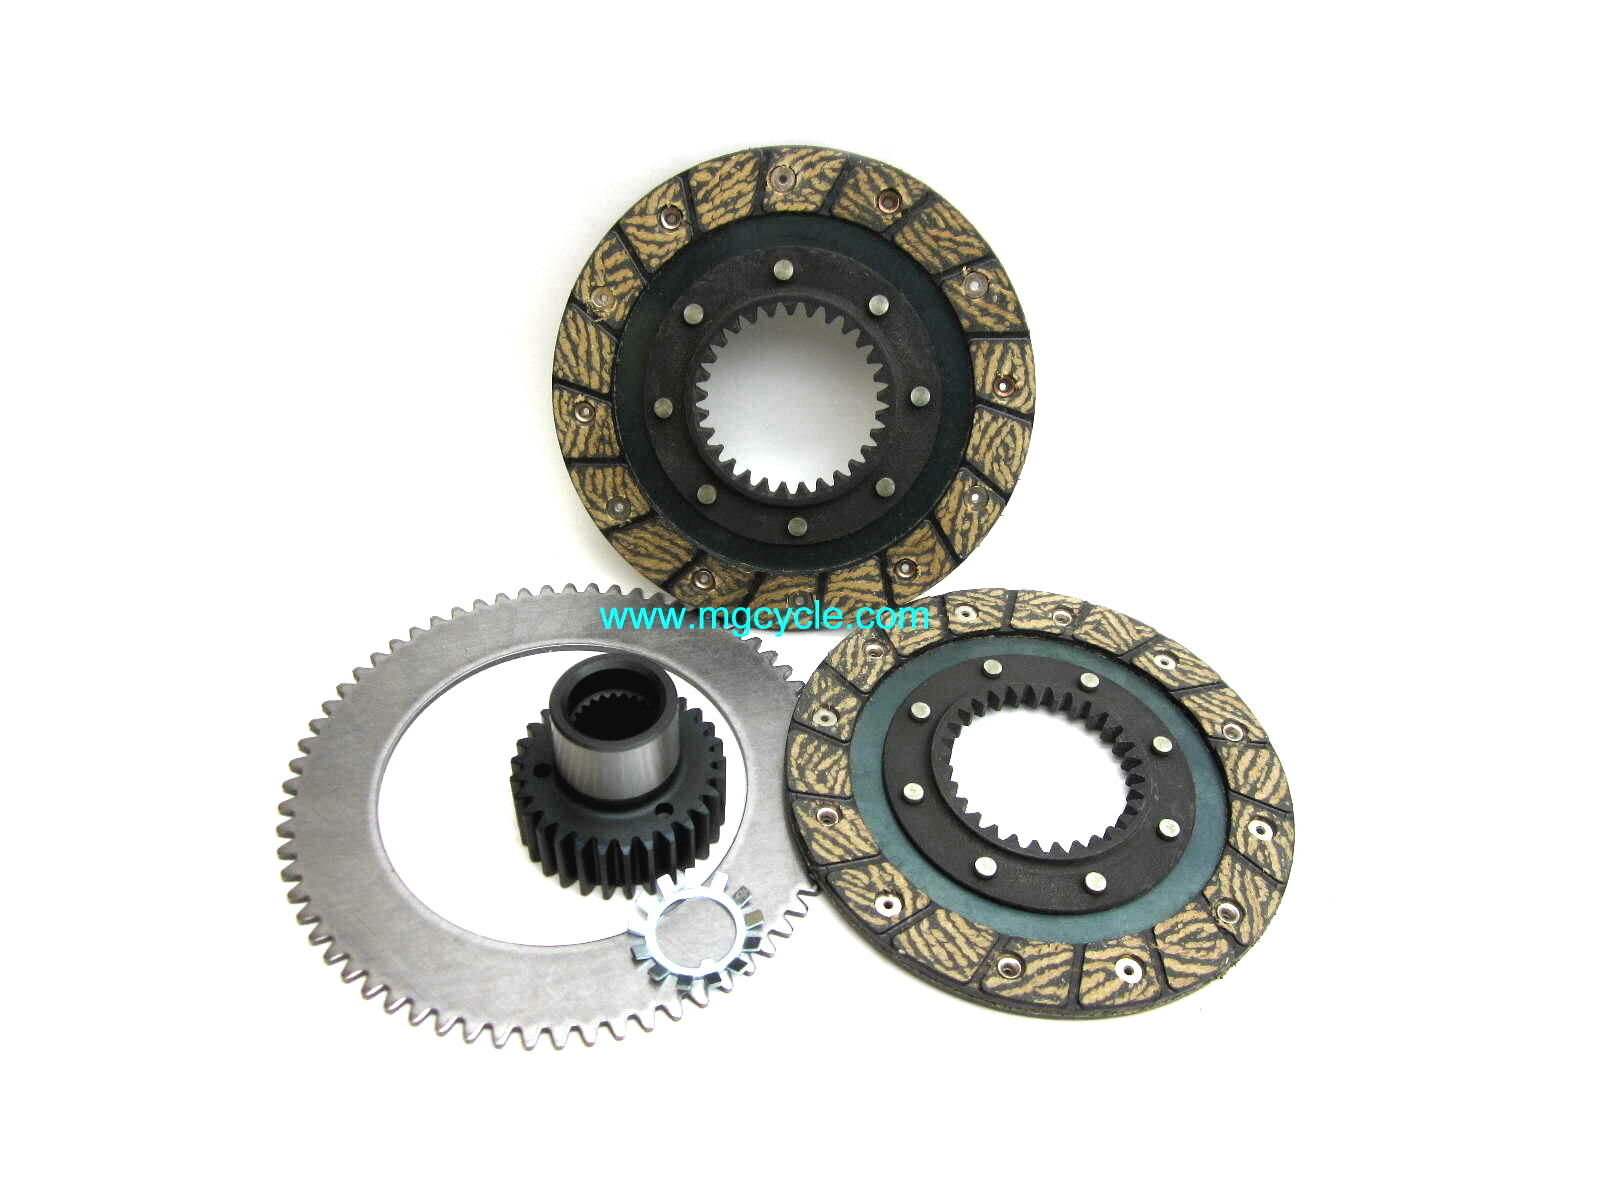 SD-TEC clutch kit, 2 plates, hub, intermediate plate 5 speeds